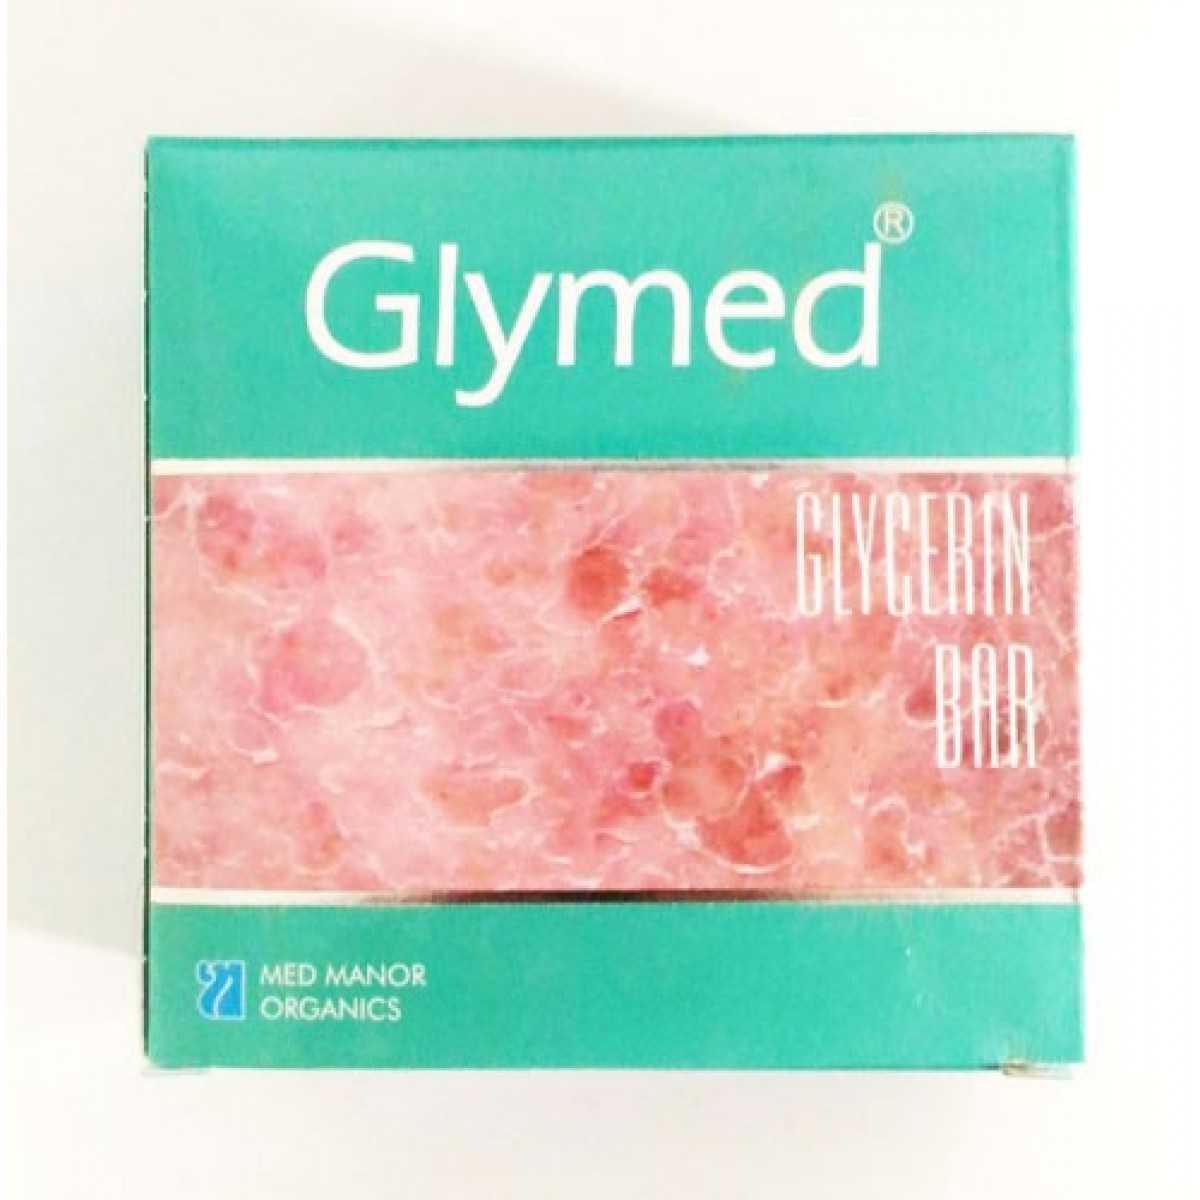 GLYMED GLYCERIN BAR 75G pack of 4